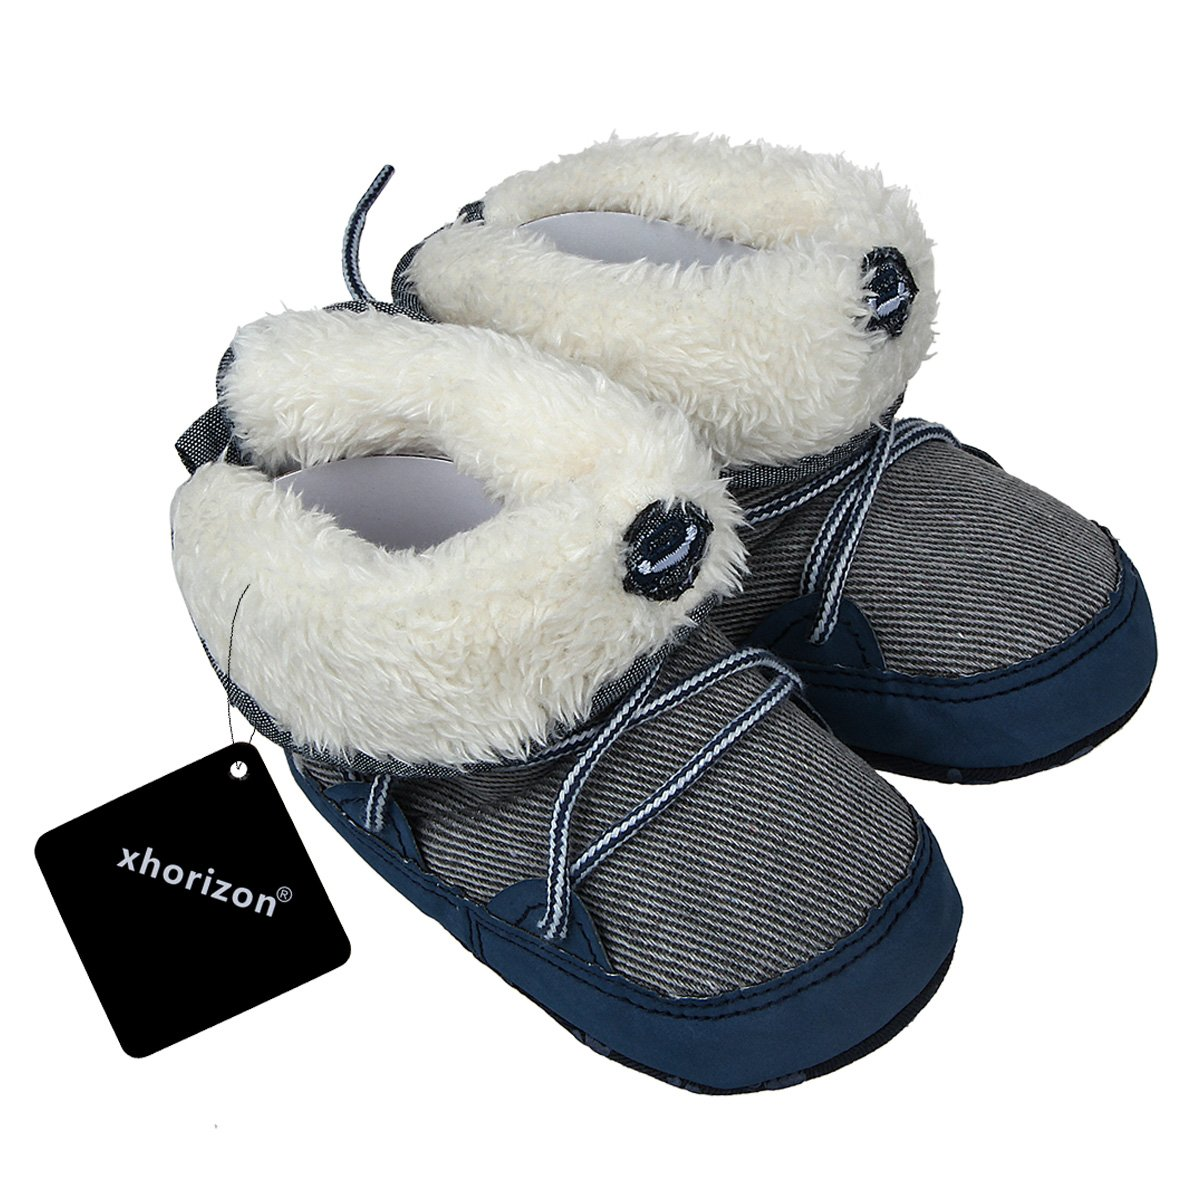 xhorizon TM FL1 Baby Boys Warm Winter Toddler Boots Shoes